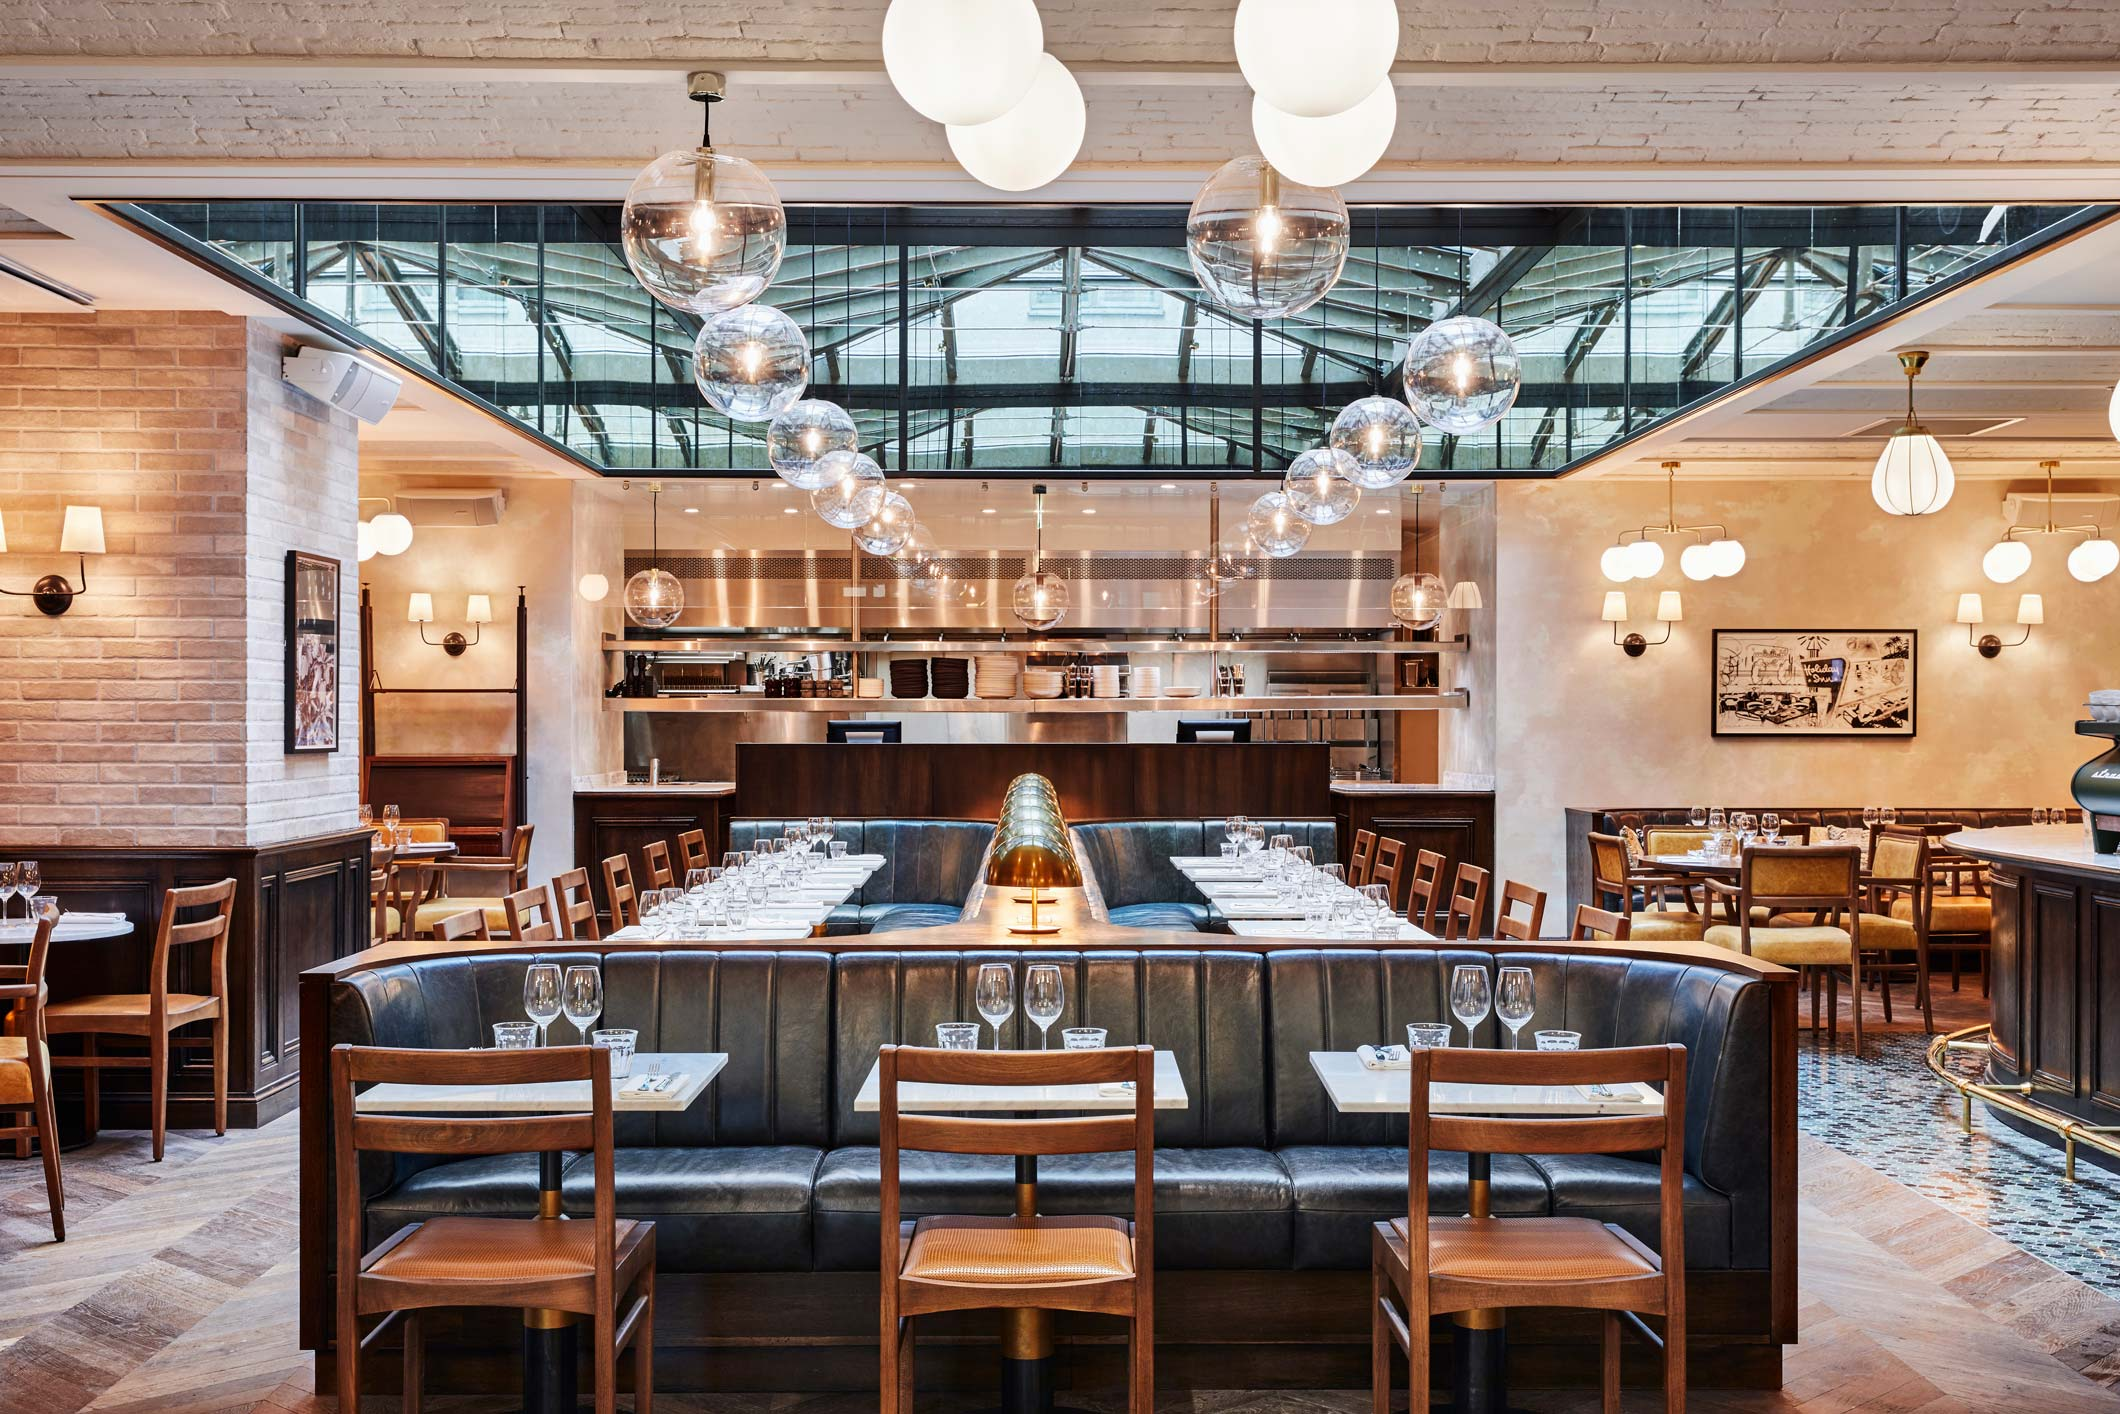 Image - Rivié at The Hoxton, Paris serves breakfast to hotel guests and locals alike as is as much a part of the local